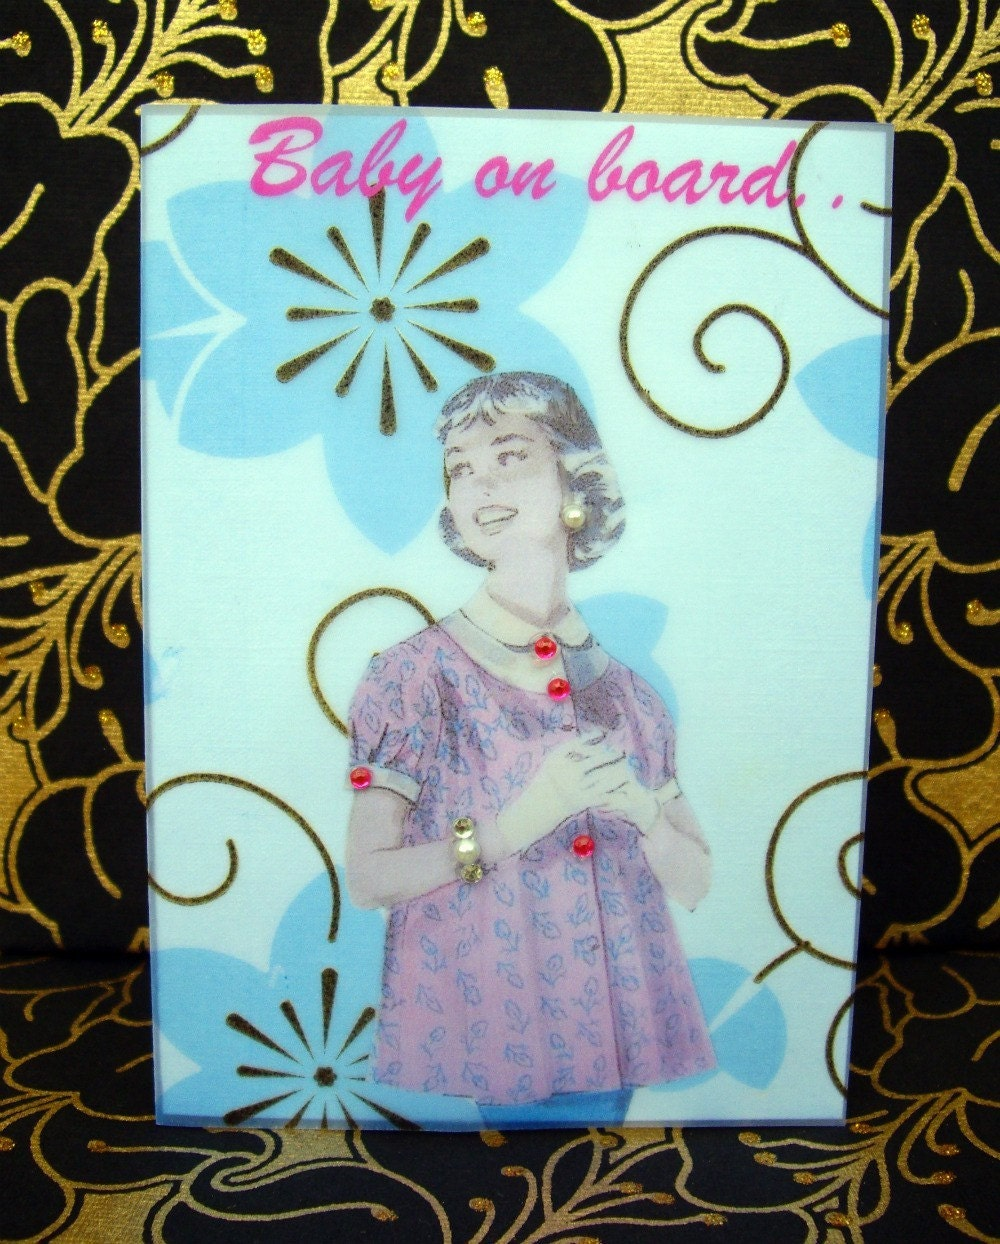 Betty Card / Baby on board / Vintage Printed Collection / Maternity 50s Glamour Girl / Handmade Greeting Card